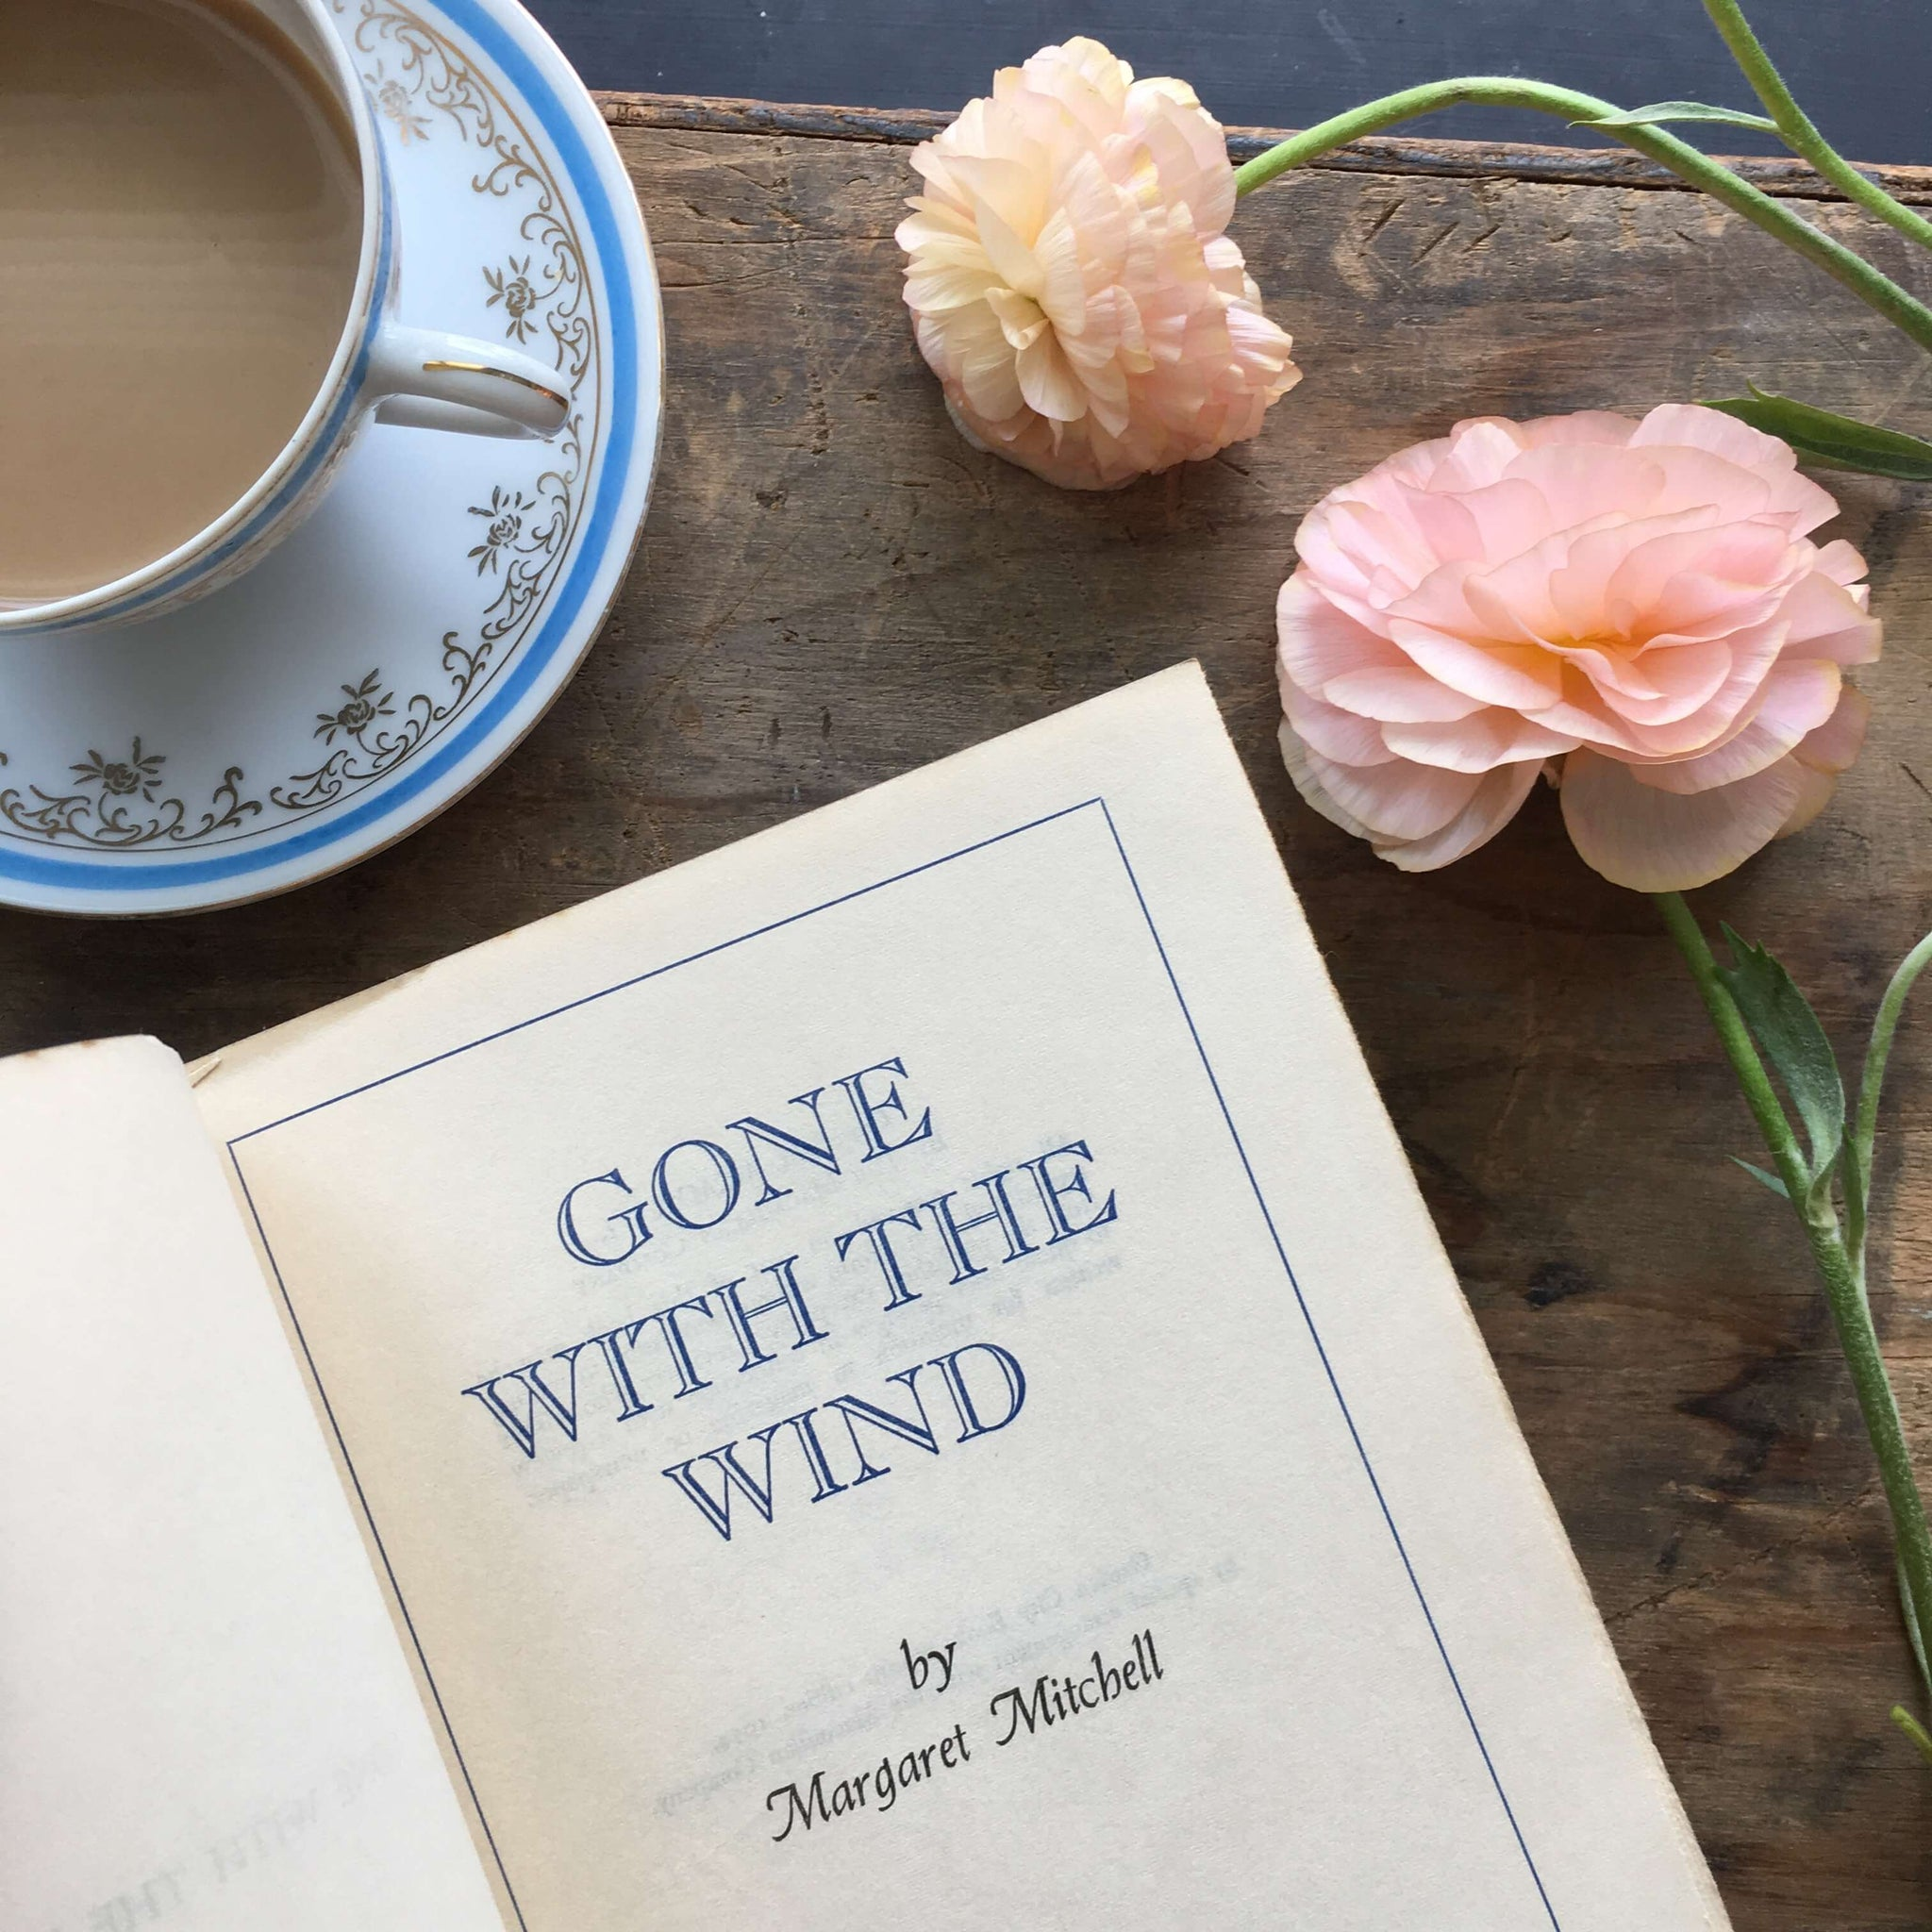 Gone With The Wind - Margaret Mitchell - 1954 Garden City Books Edition